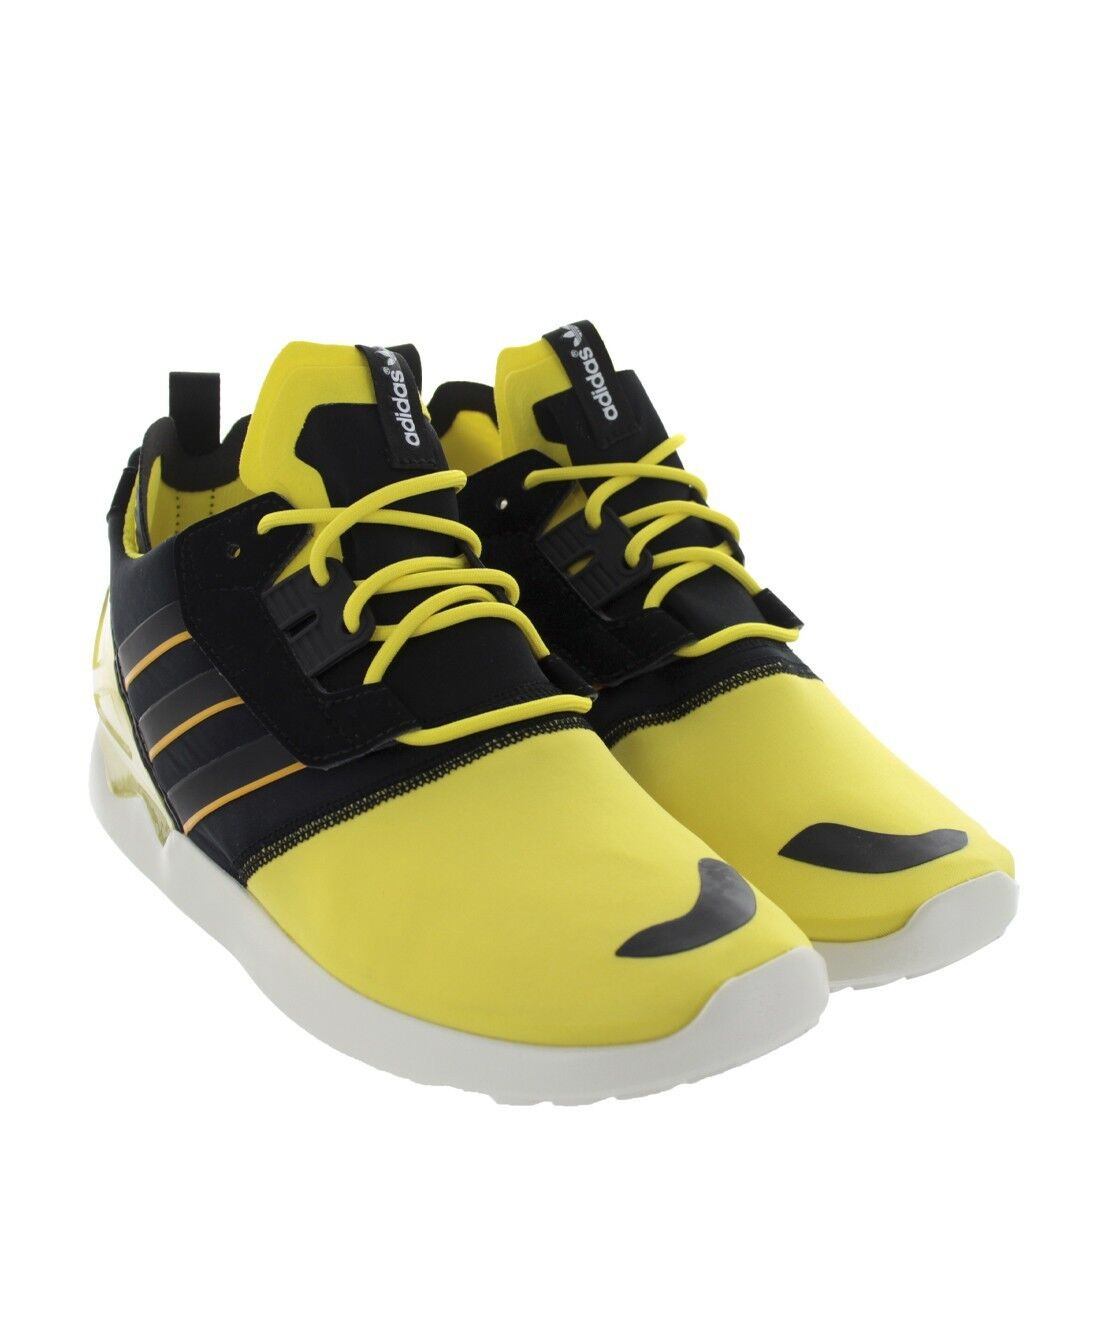 Baskets Adidas Boost 8000 Course Zx B26369 Jaune Chaussures fxwPxBqSY